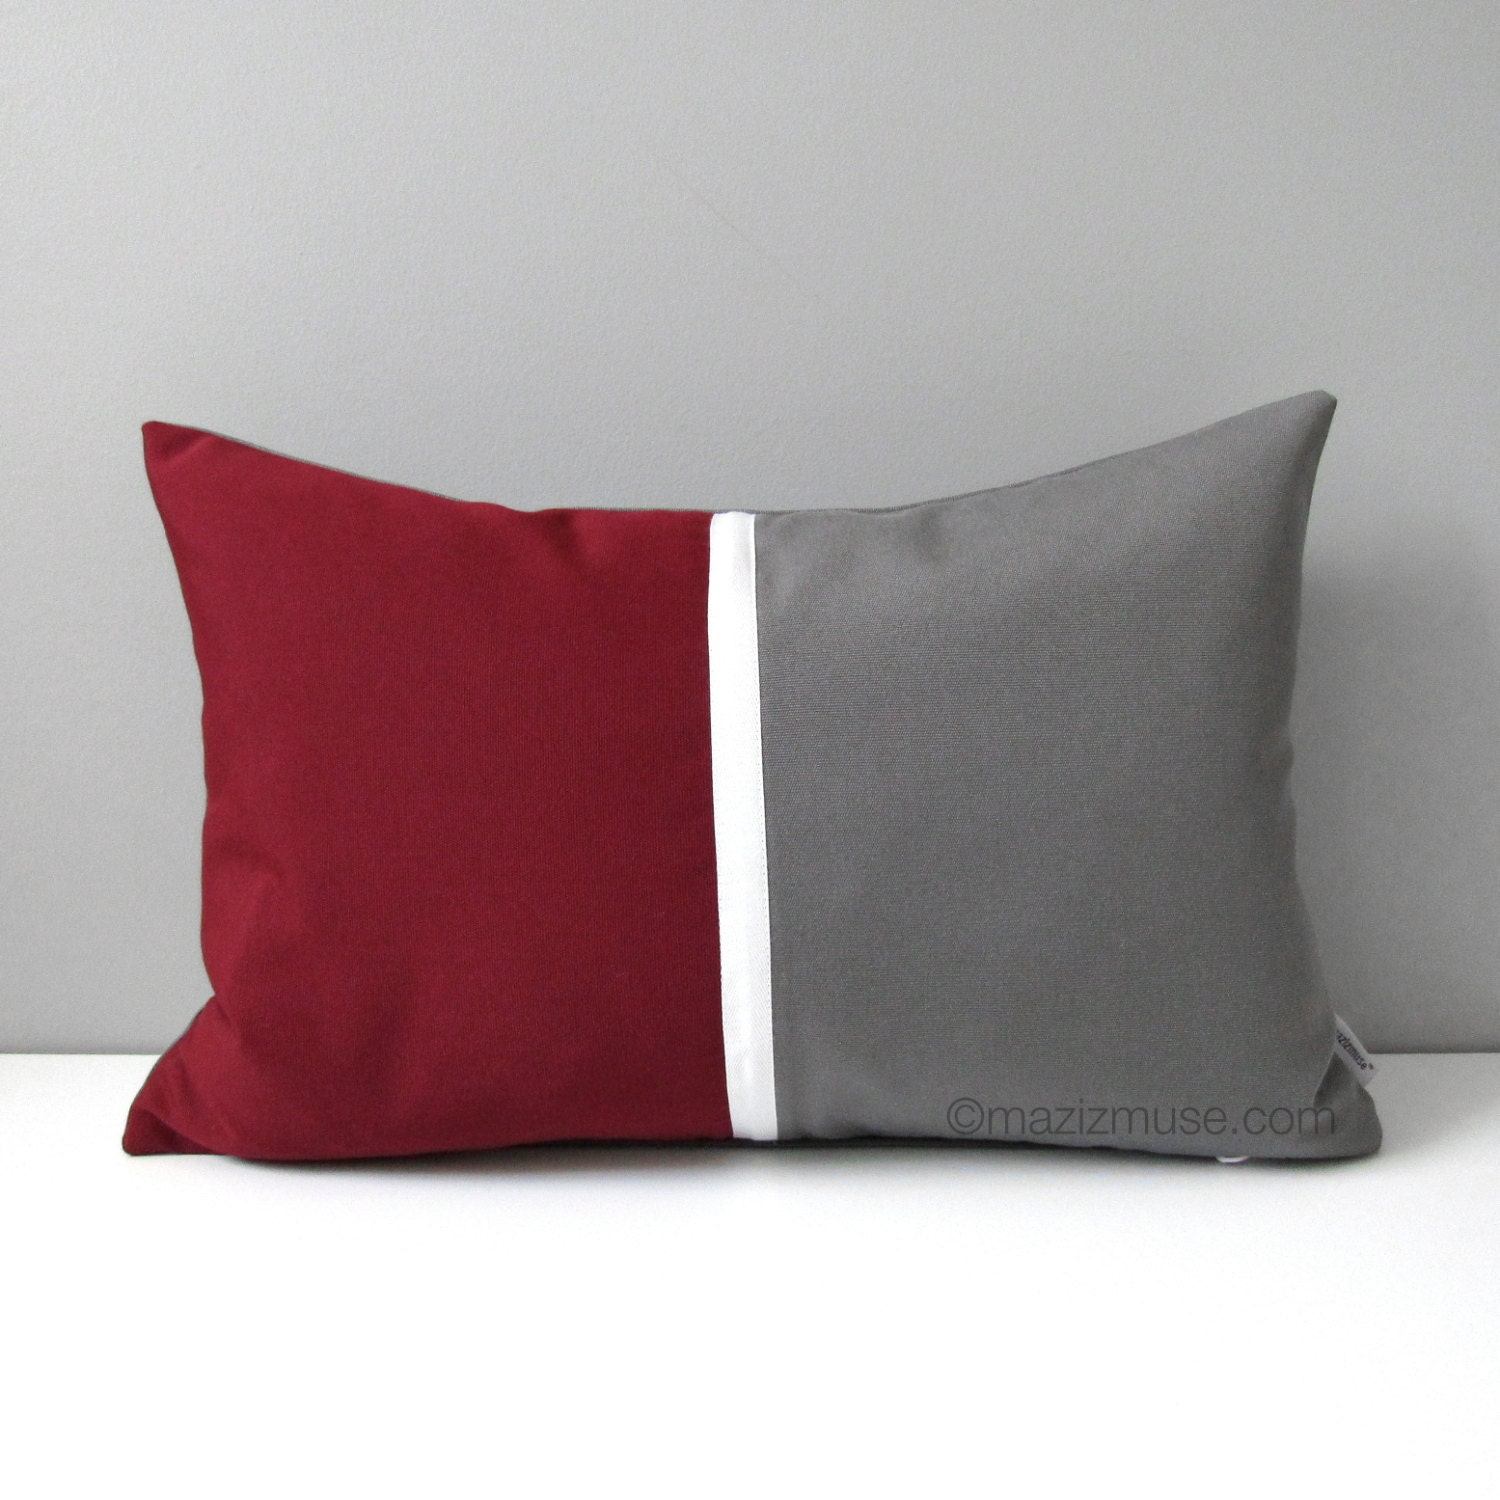 The Modern Pillow : Burgundy & Grey Pillow Cover Modern Outdoor Pillow by Mazizmuse